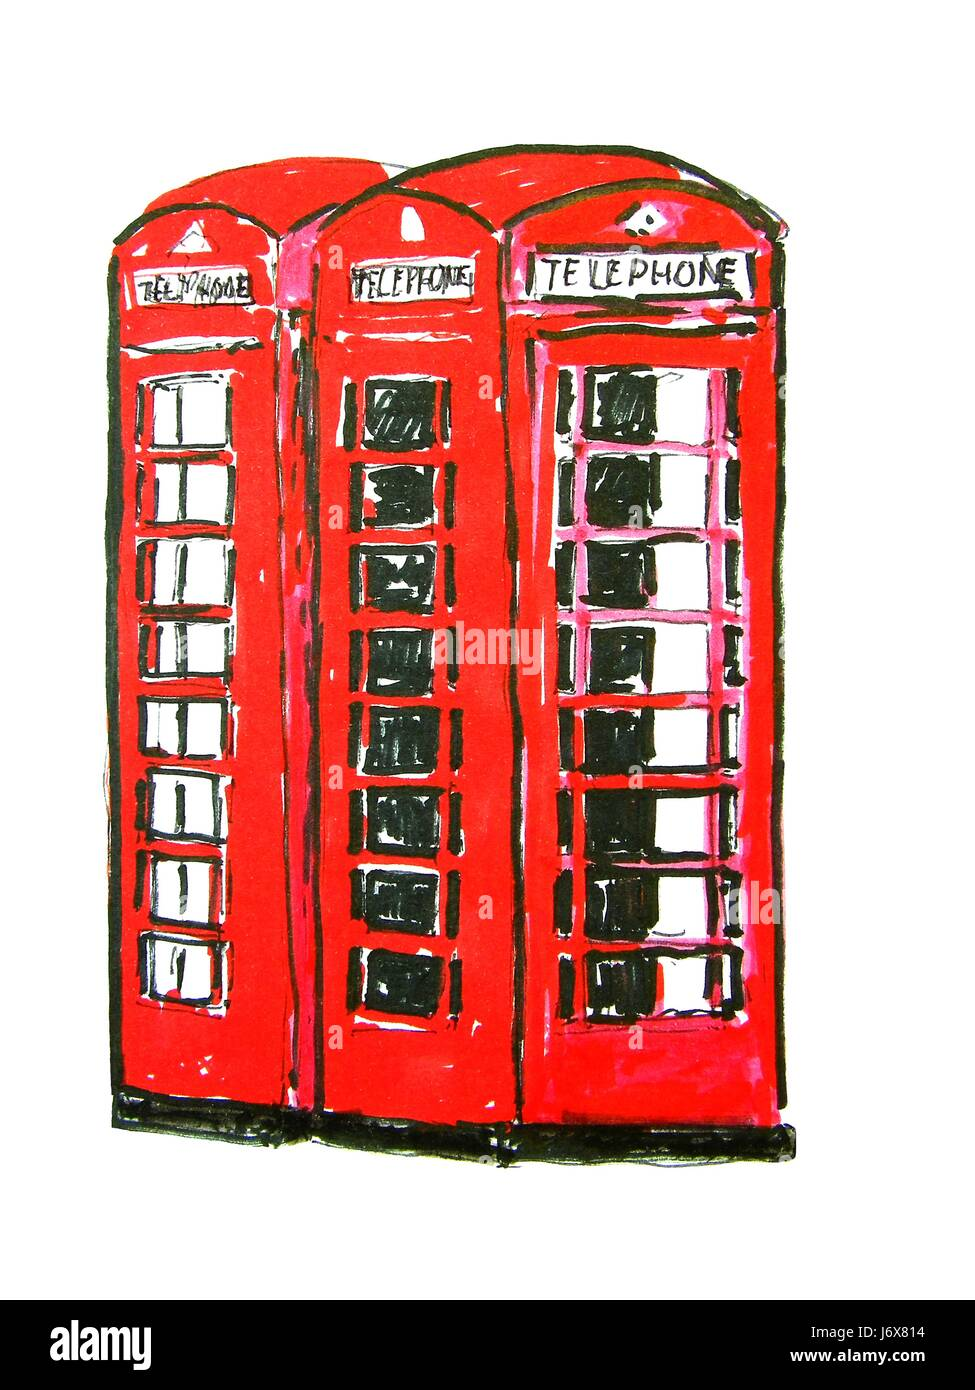 phone booths in london - Stock Image